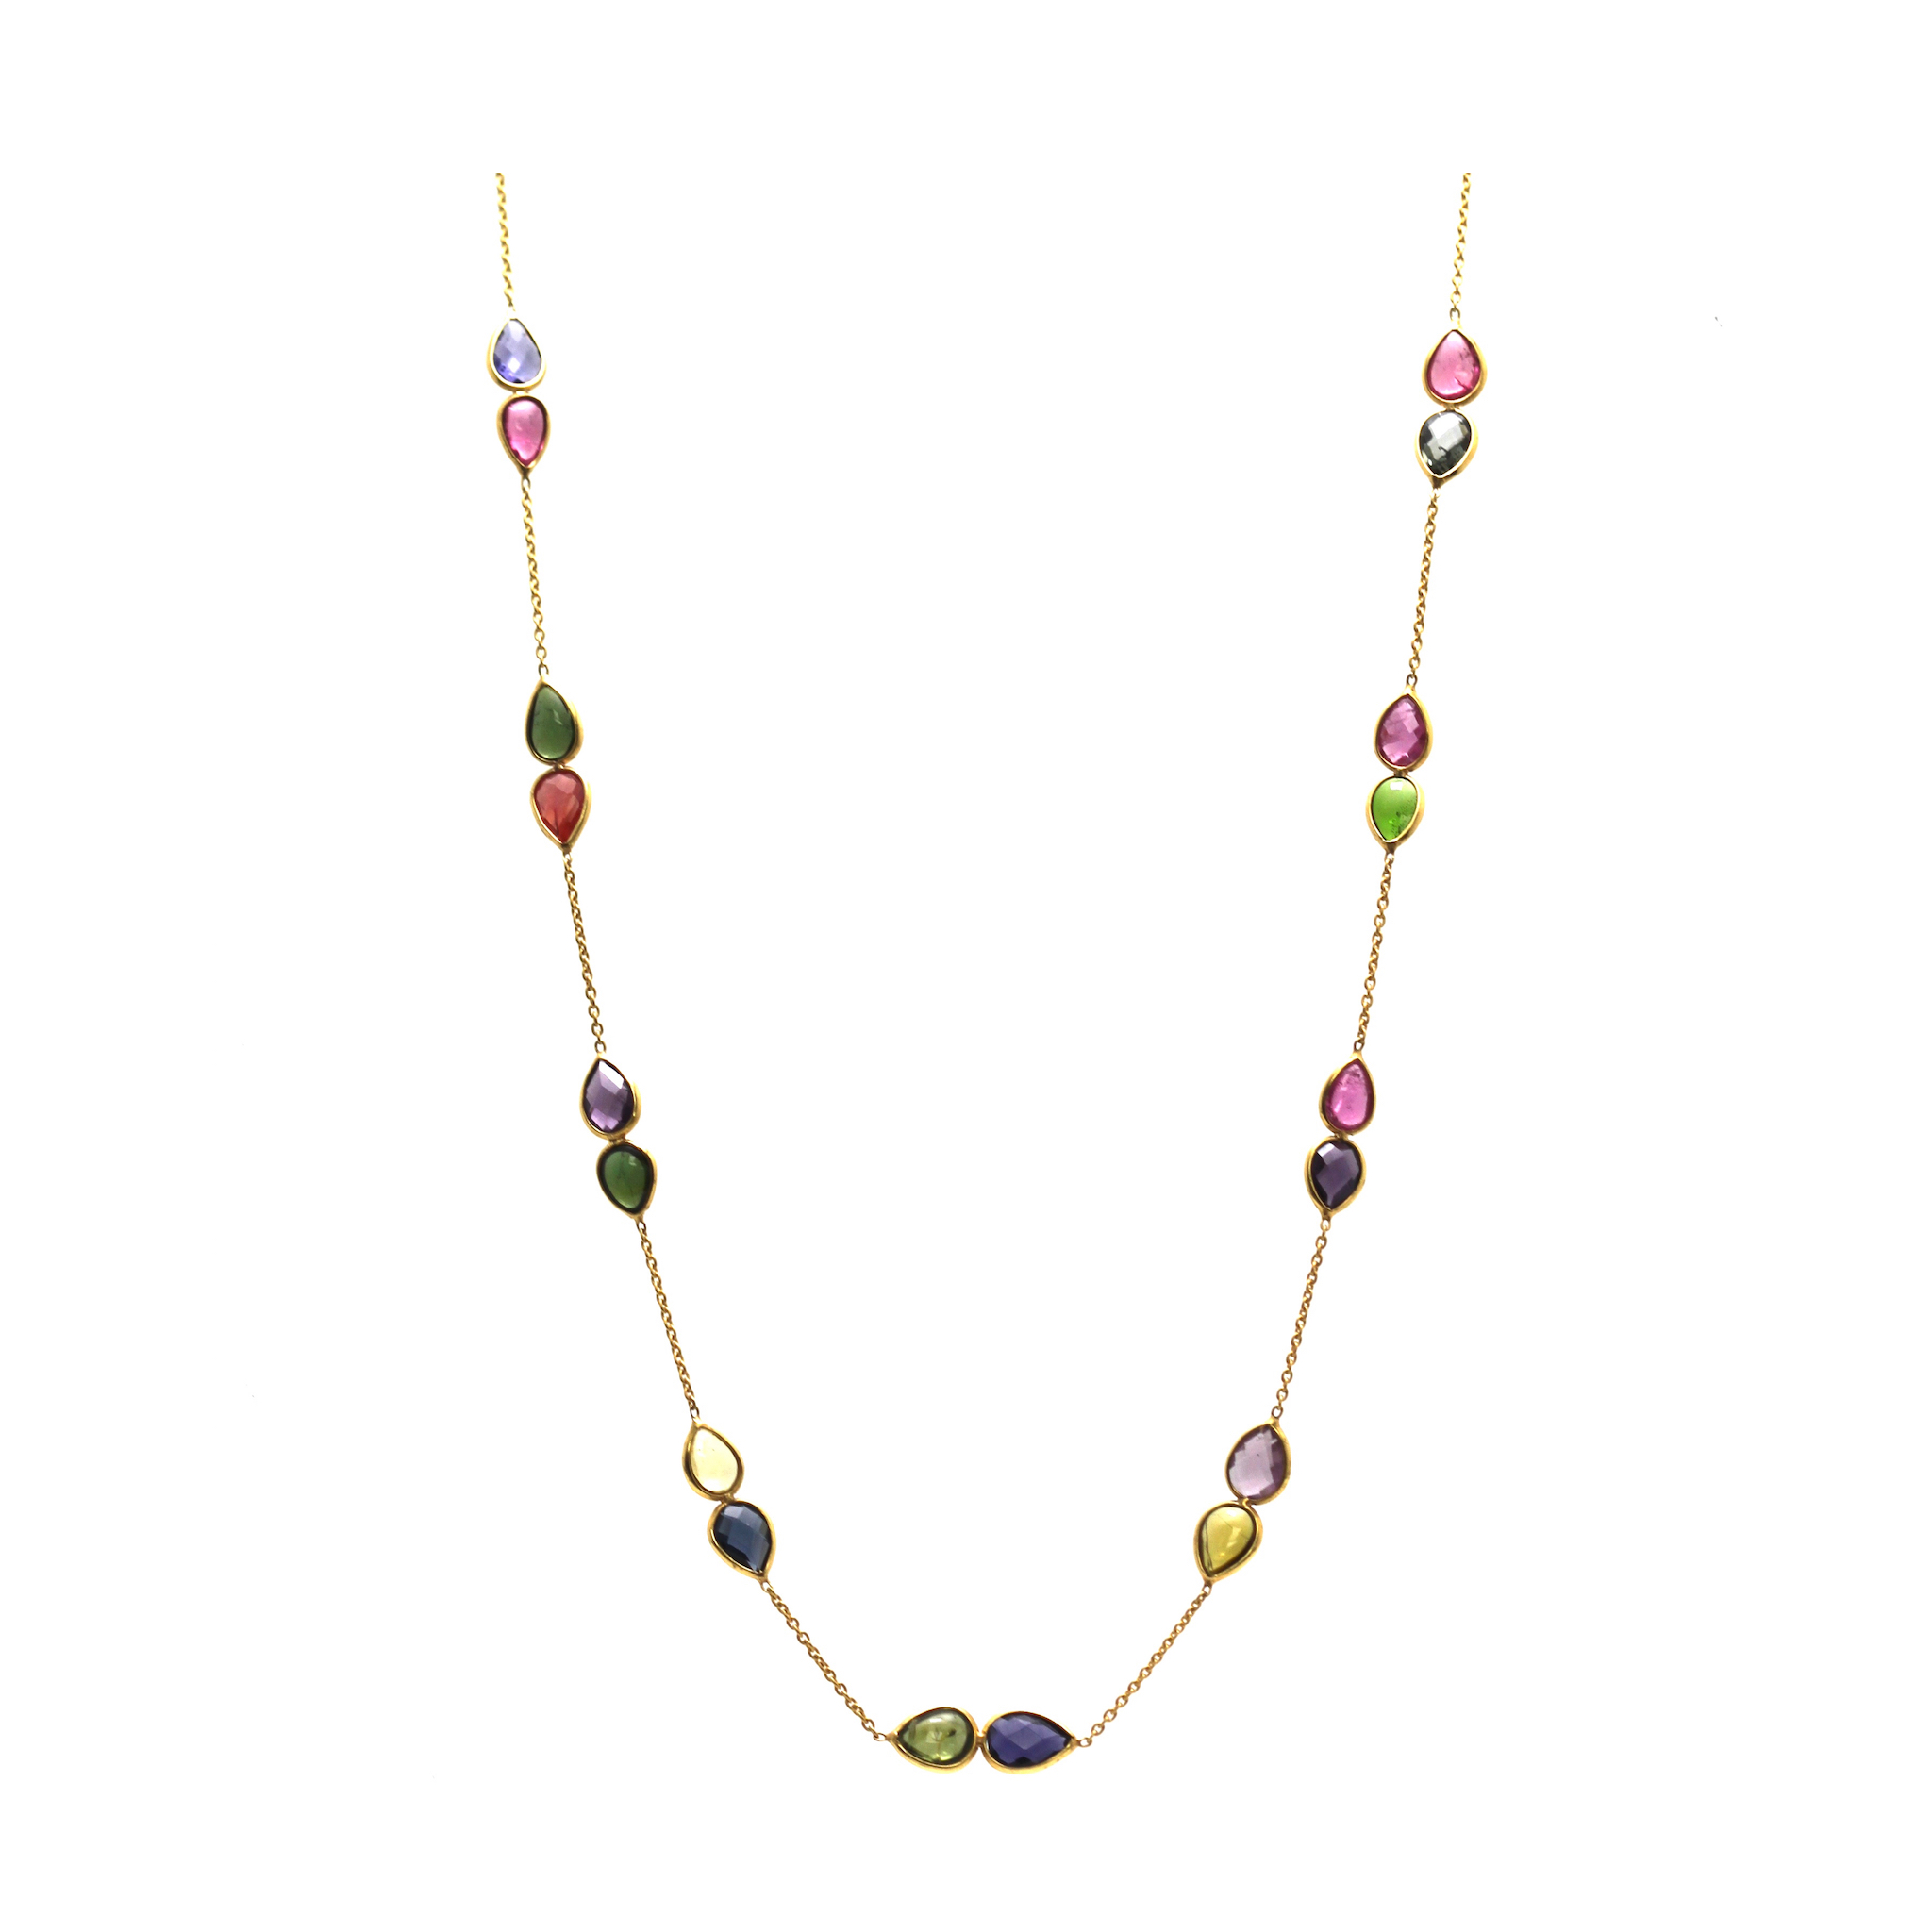 Multicolor Tourmaline Necklace In 18K Yellow Gold